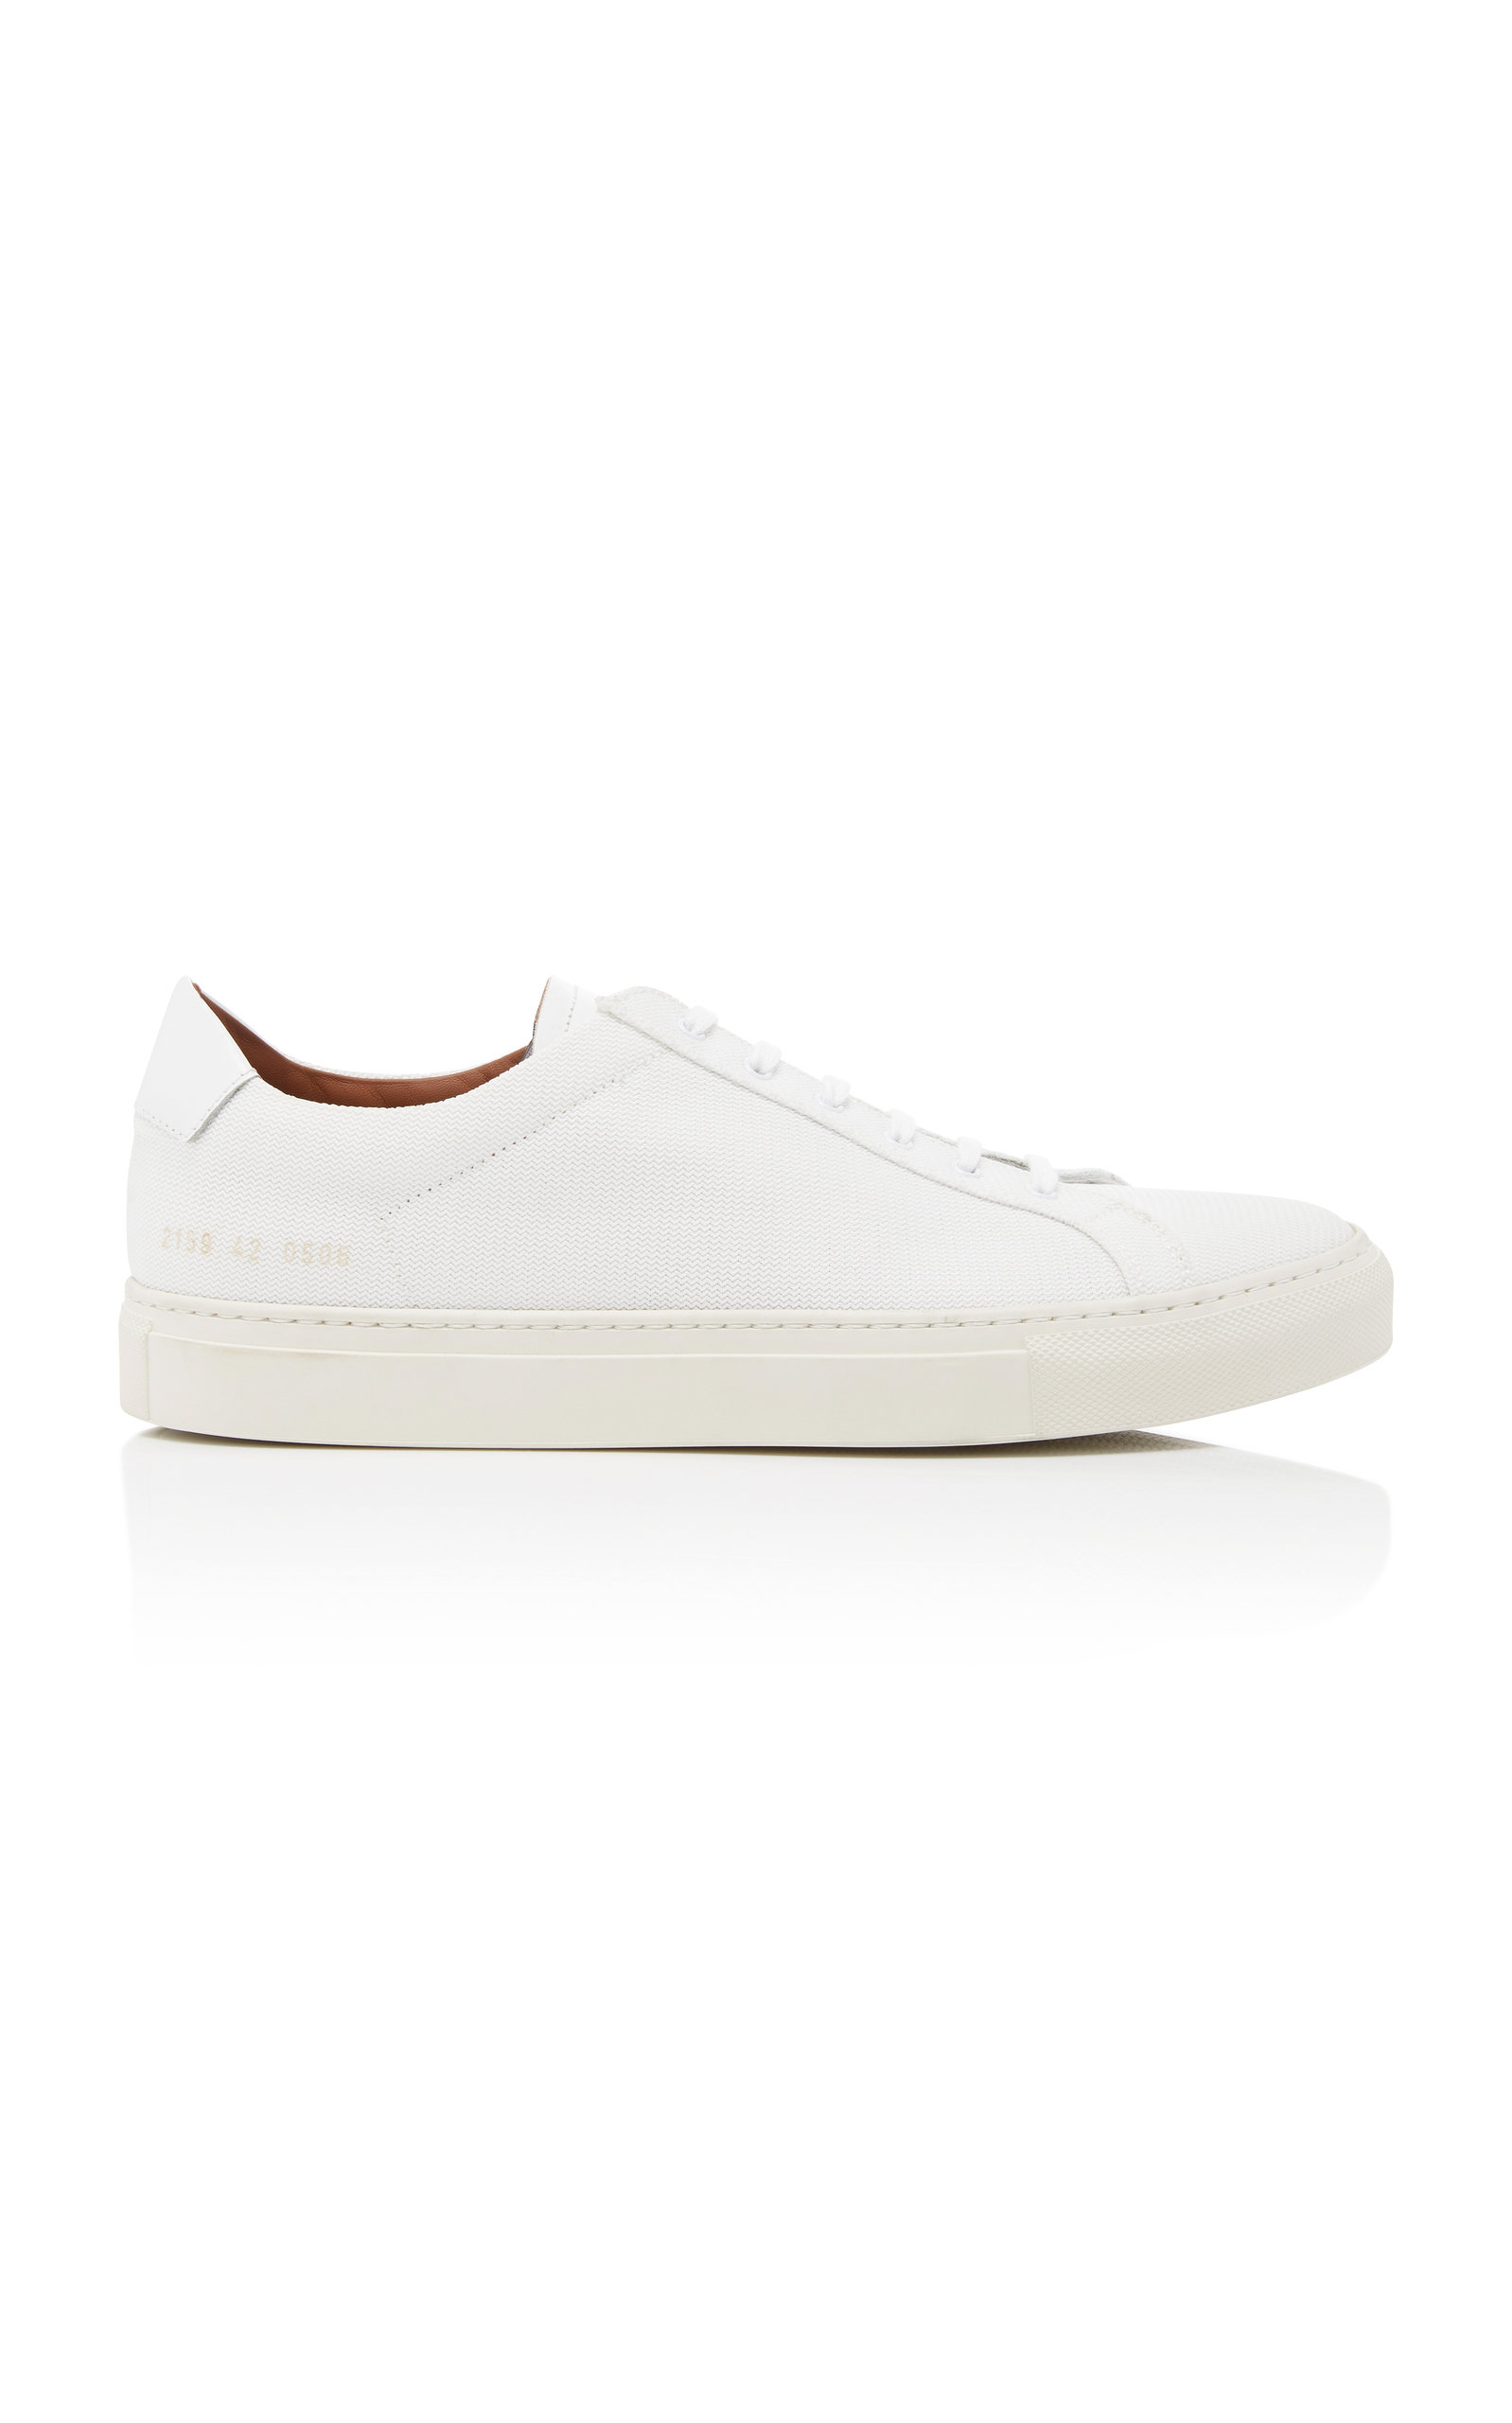 a345199ea400 Common ProjectsAchilles Canvas Low-Top Sneakers. CLOSE. Loading